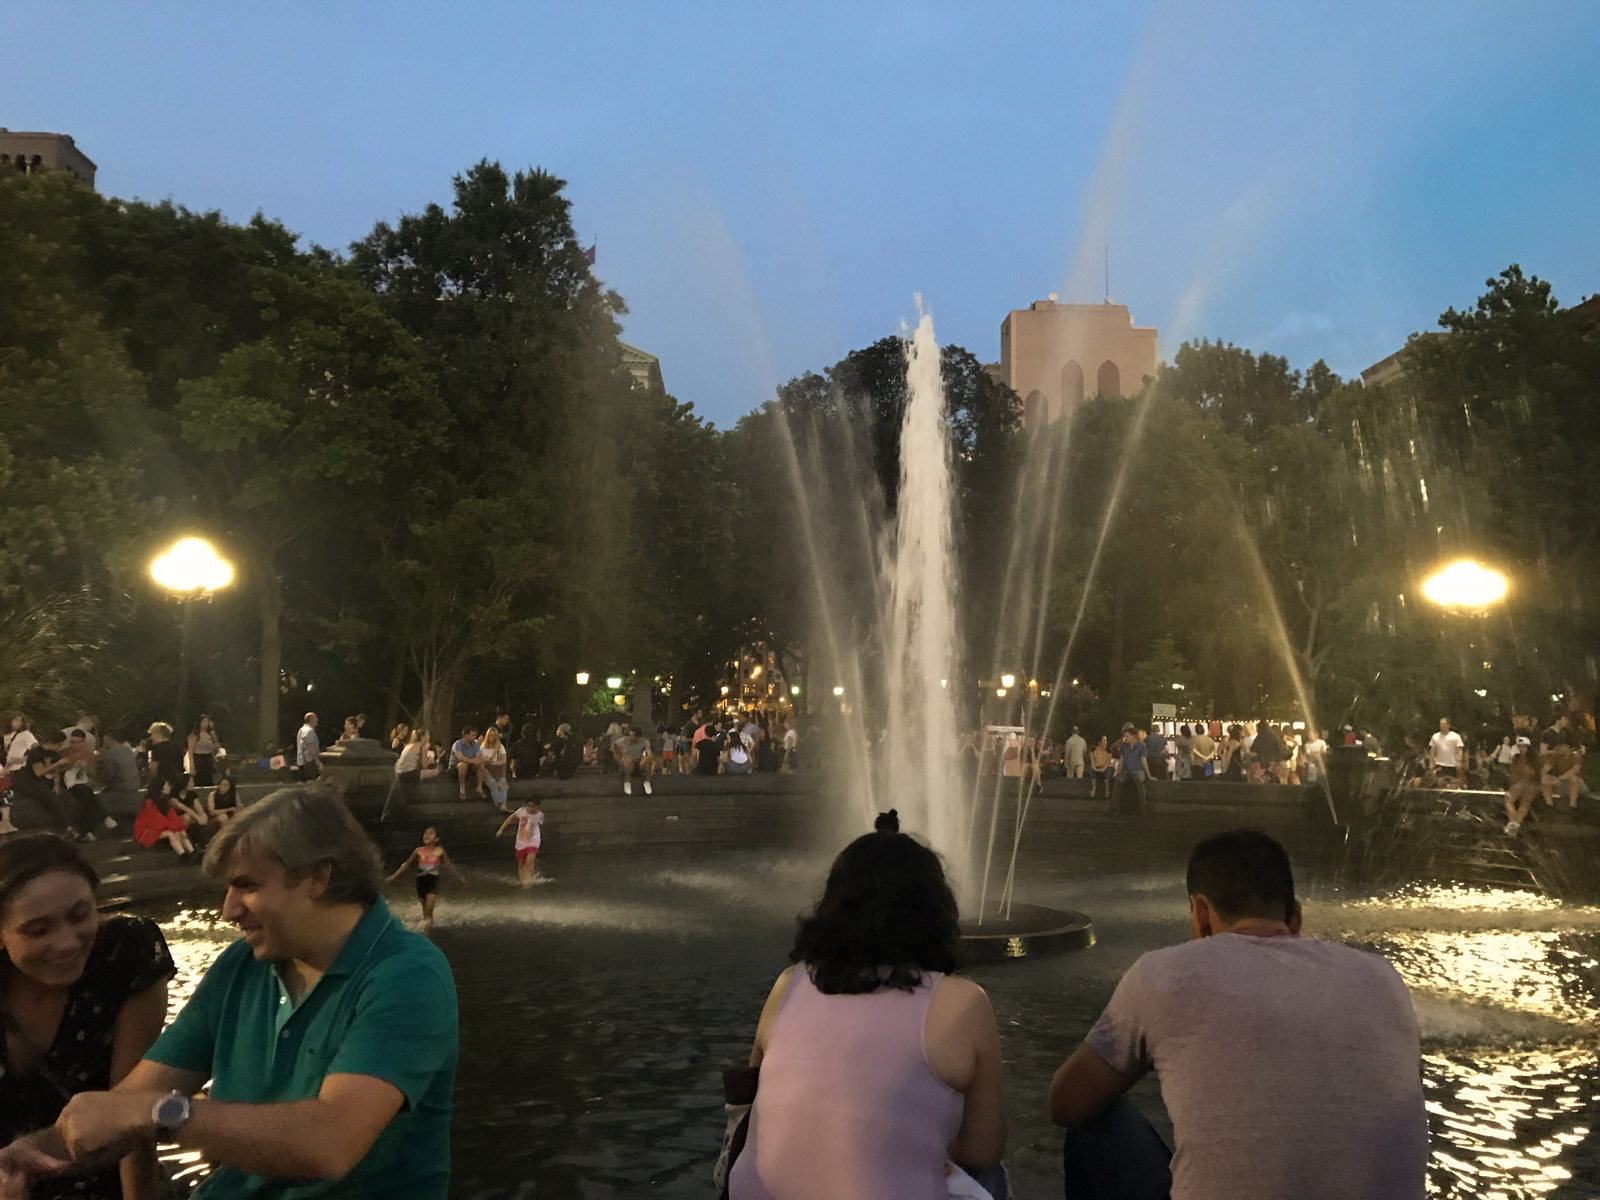 A nighttime view of many people sitting around a fountain. The fountain is active and jetting water.